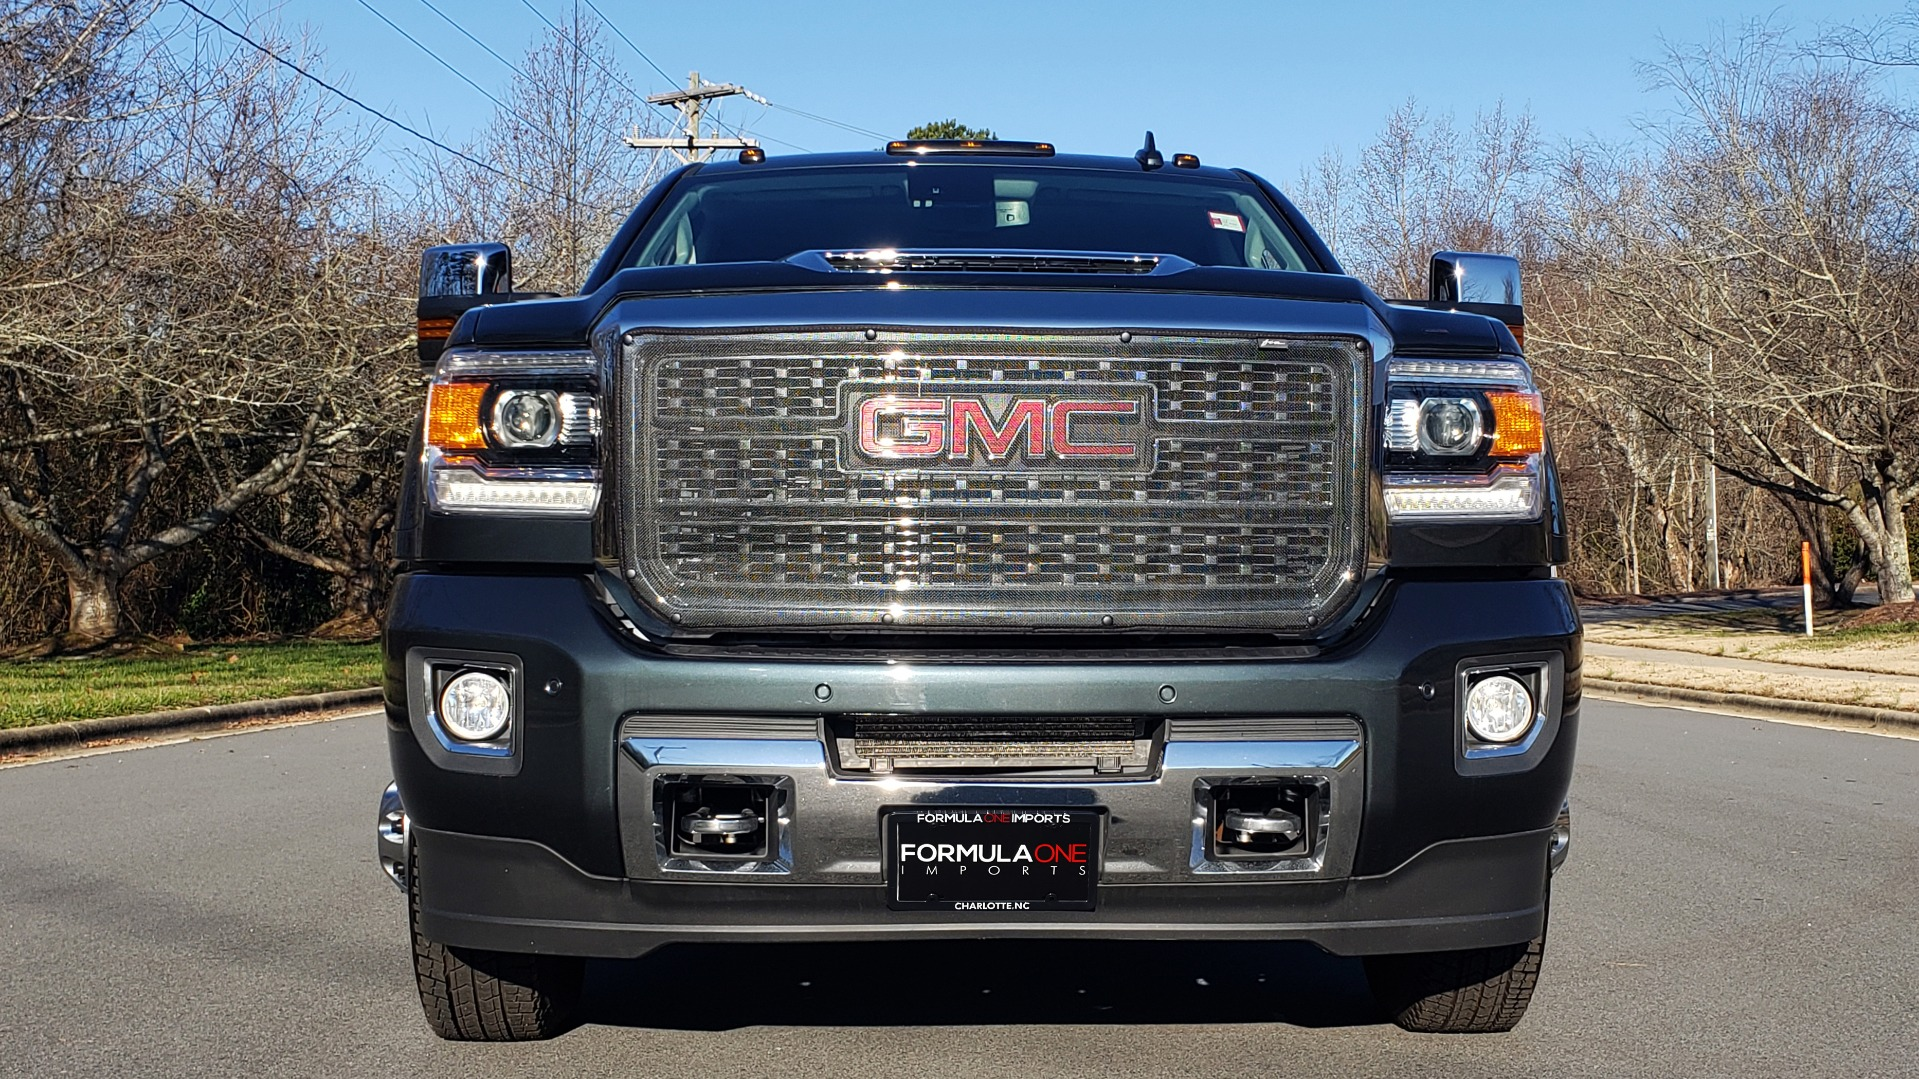 Used 2018 GMC SIERRA 3500HD DENALI 4X4 DUALLY / 6.6L DURAMAX PLUS / NAV / SUNROOF / REARVIEW for sale Sold at Formula Imports in Charlotte NC 28227 11